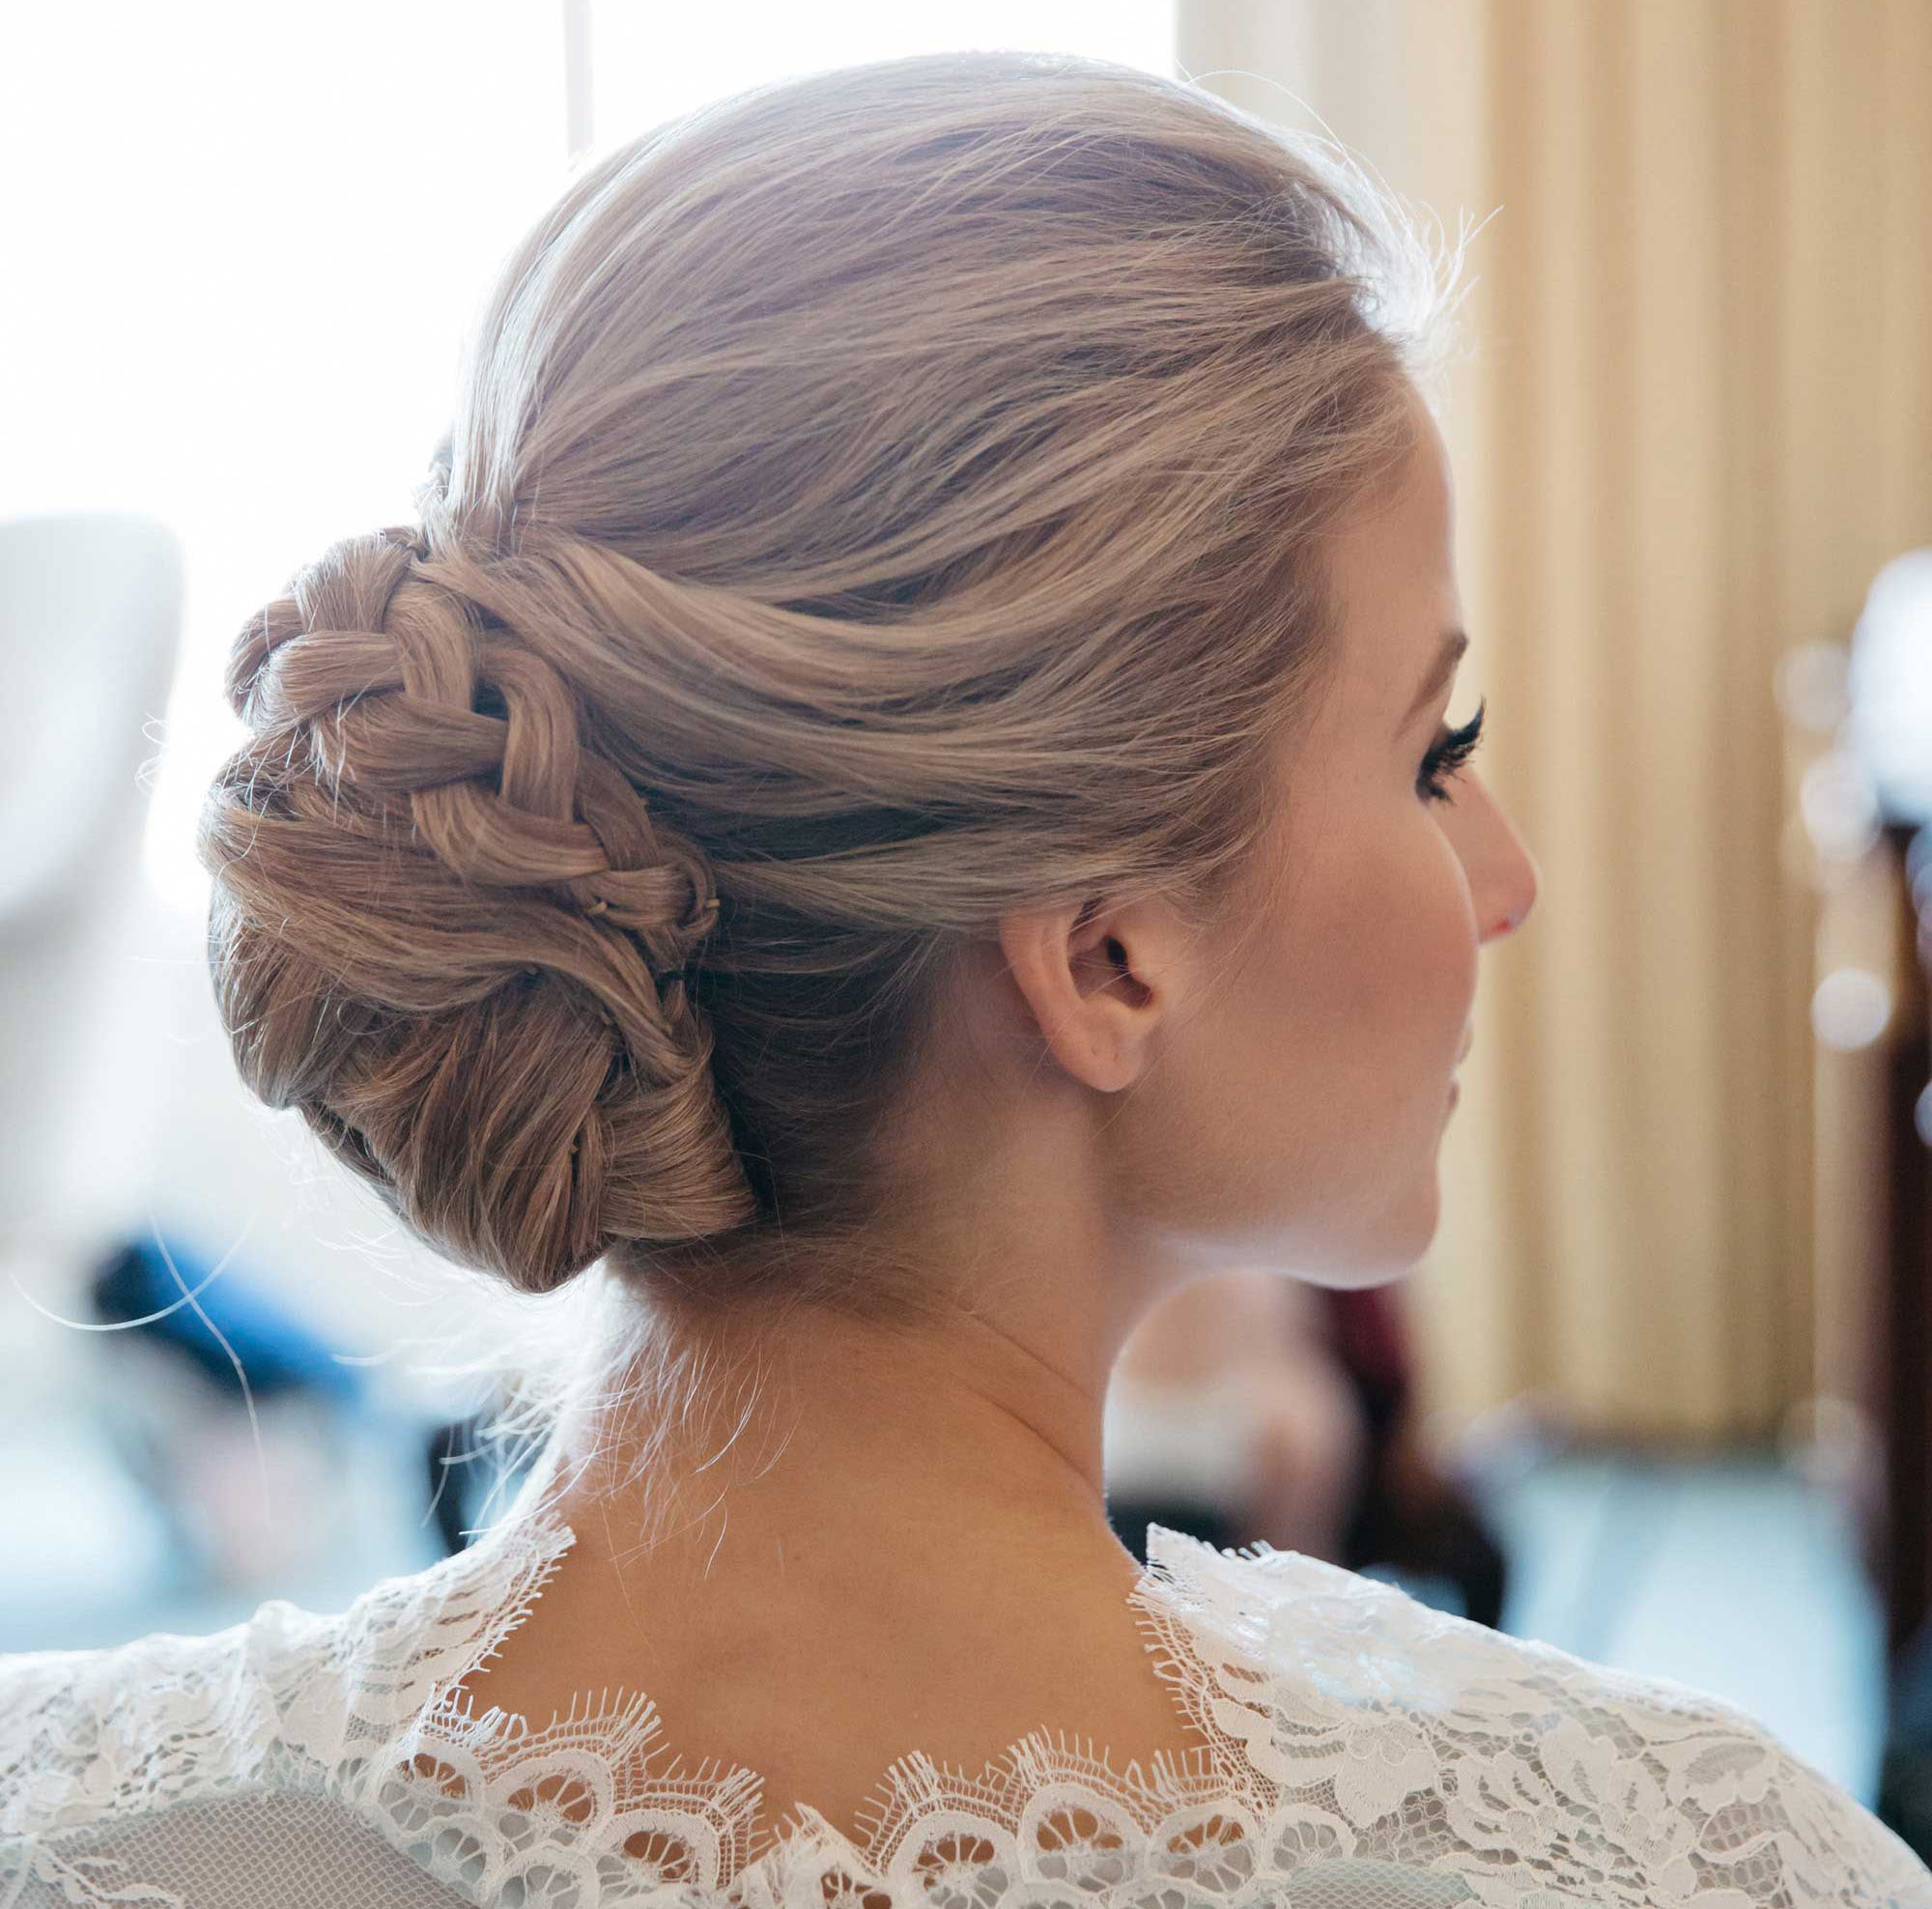 Wedding Hairstyles Braid: Braided Hairstyles: 5 Ideas For Your Wedding Look